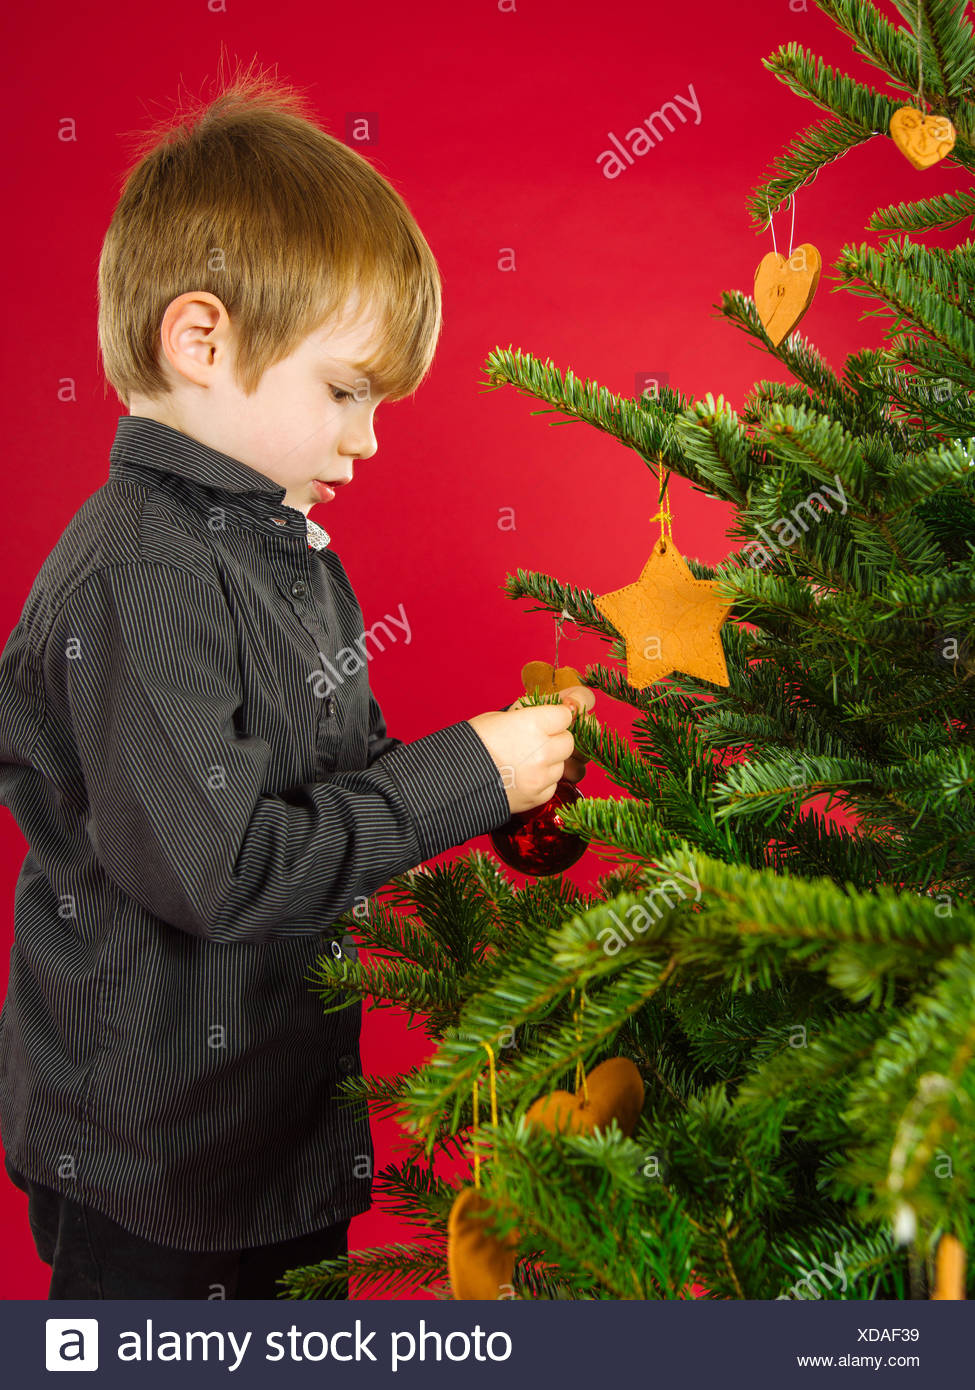 Boy hanging Christmas tree decorations - Stock Image